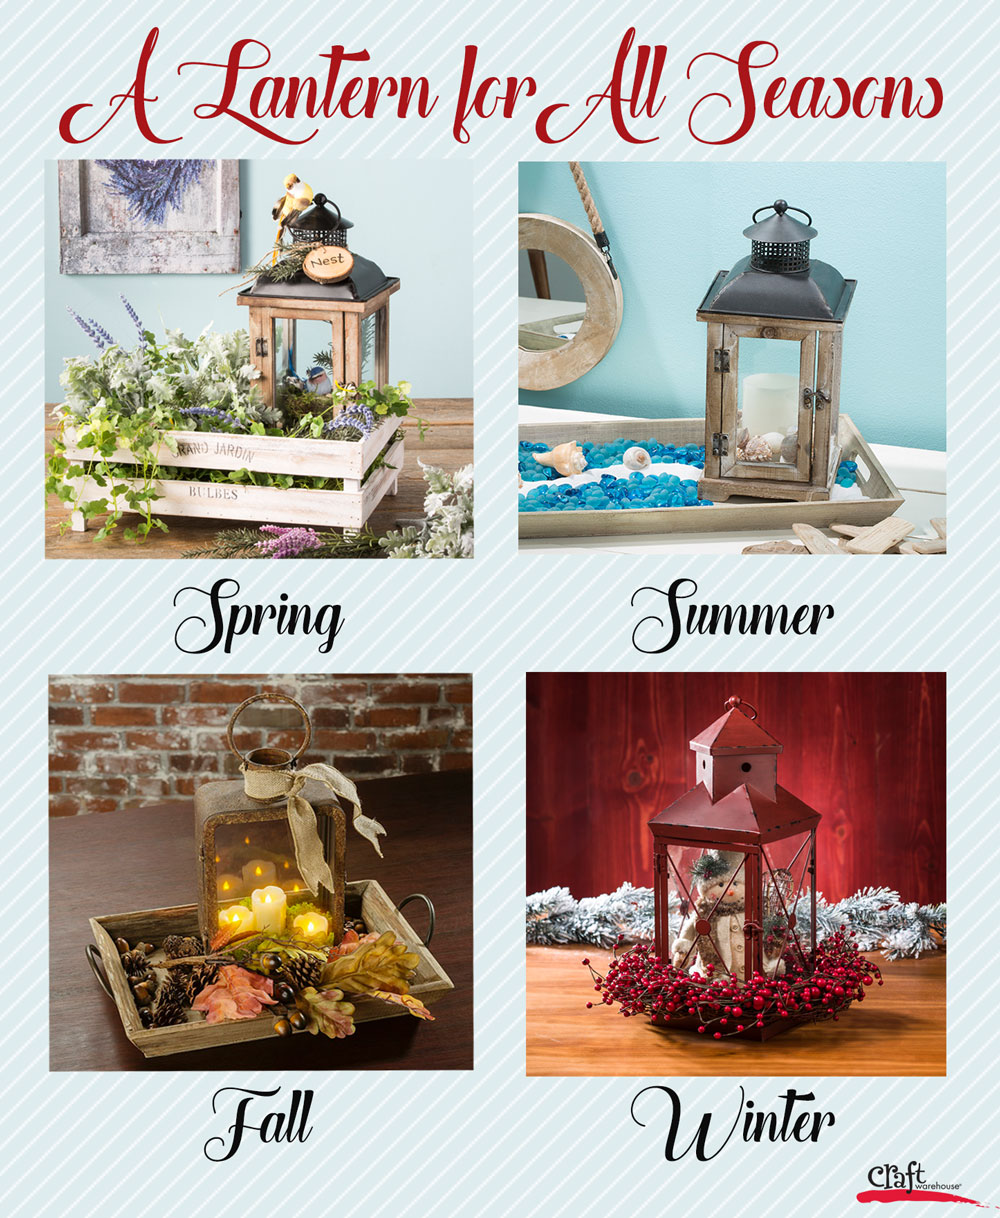 A Lantern for all Seasons at Craft Warehouse